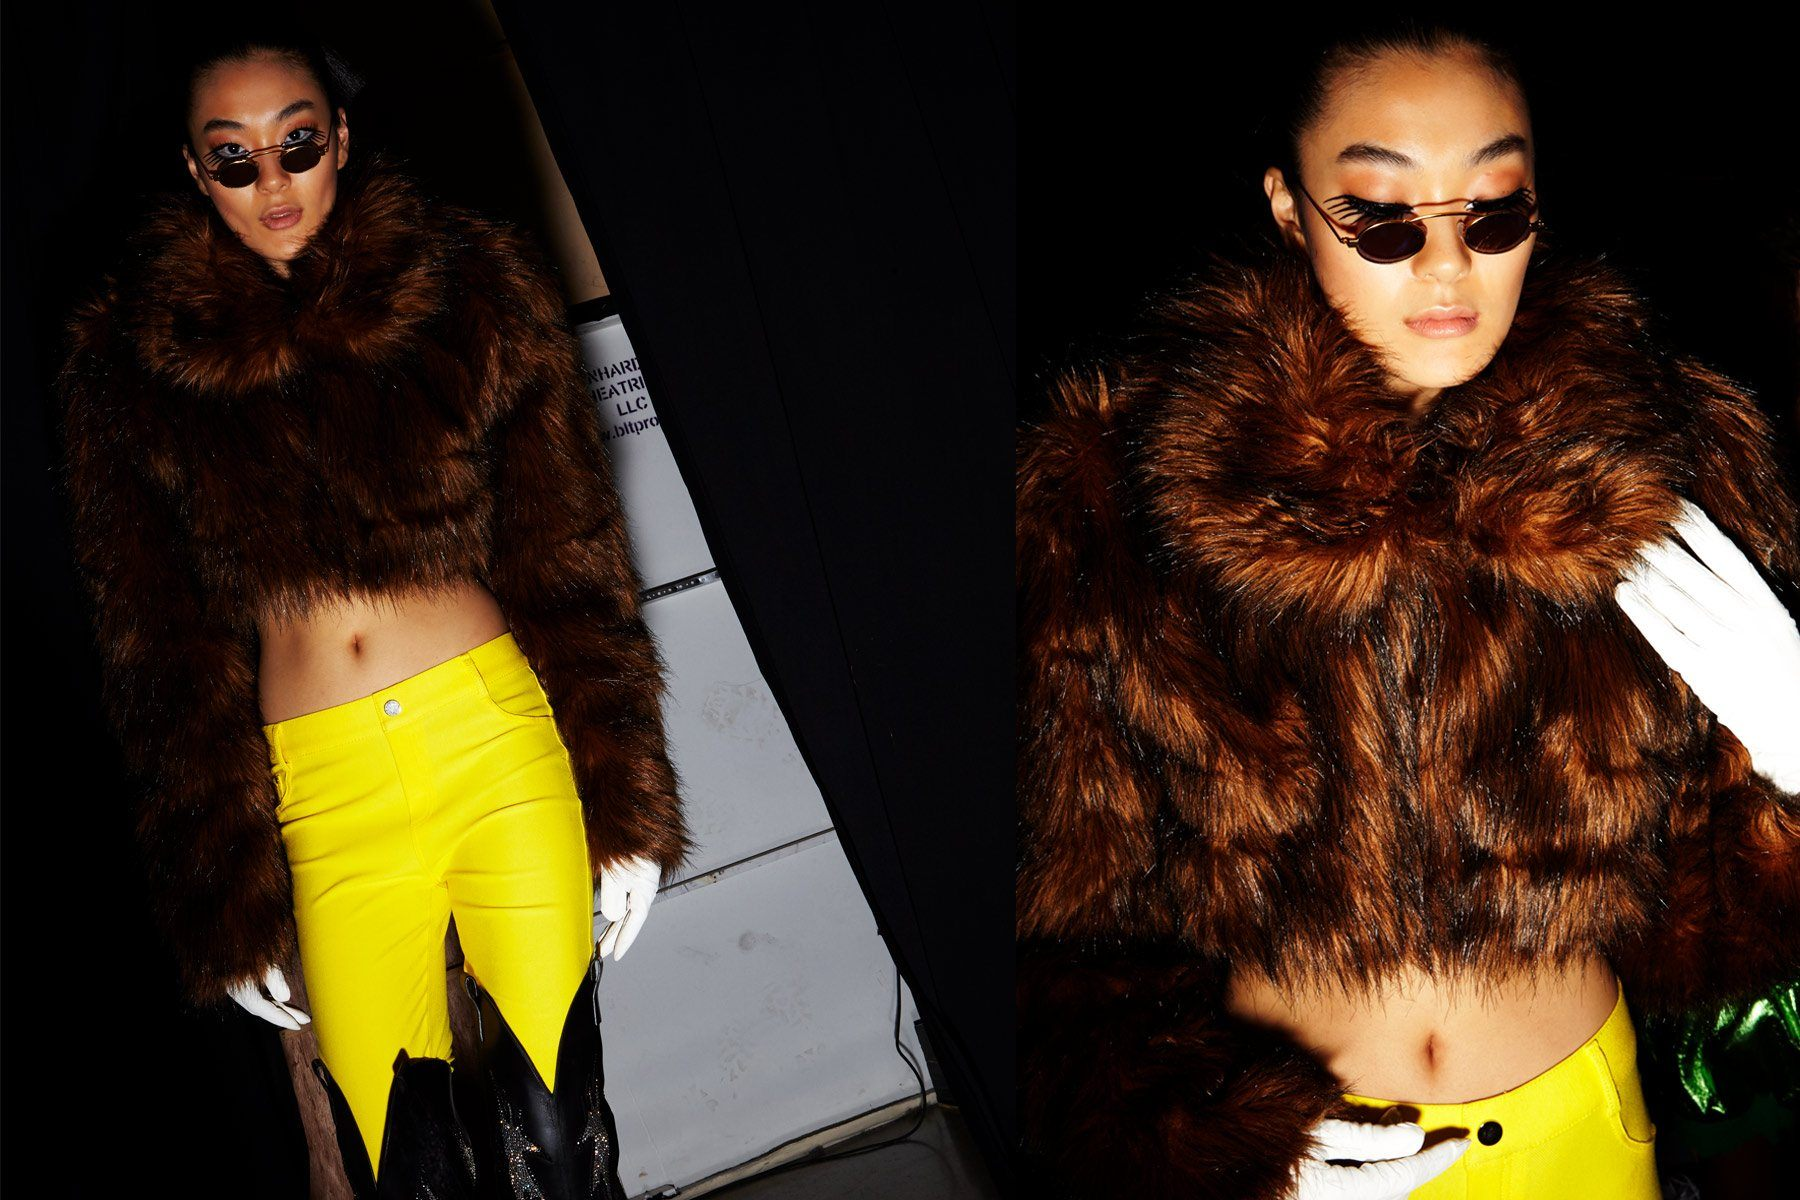 Fake fur and bright yellow trousers backstage at Christian Cowan for Fall 2018. Photography by Alexander Thompson for Ponyboy magazine.